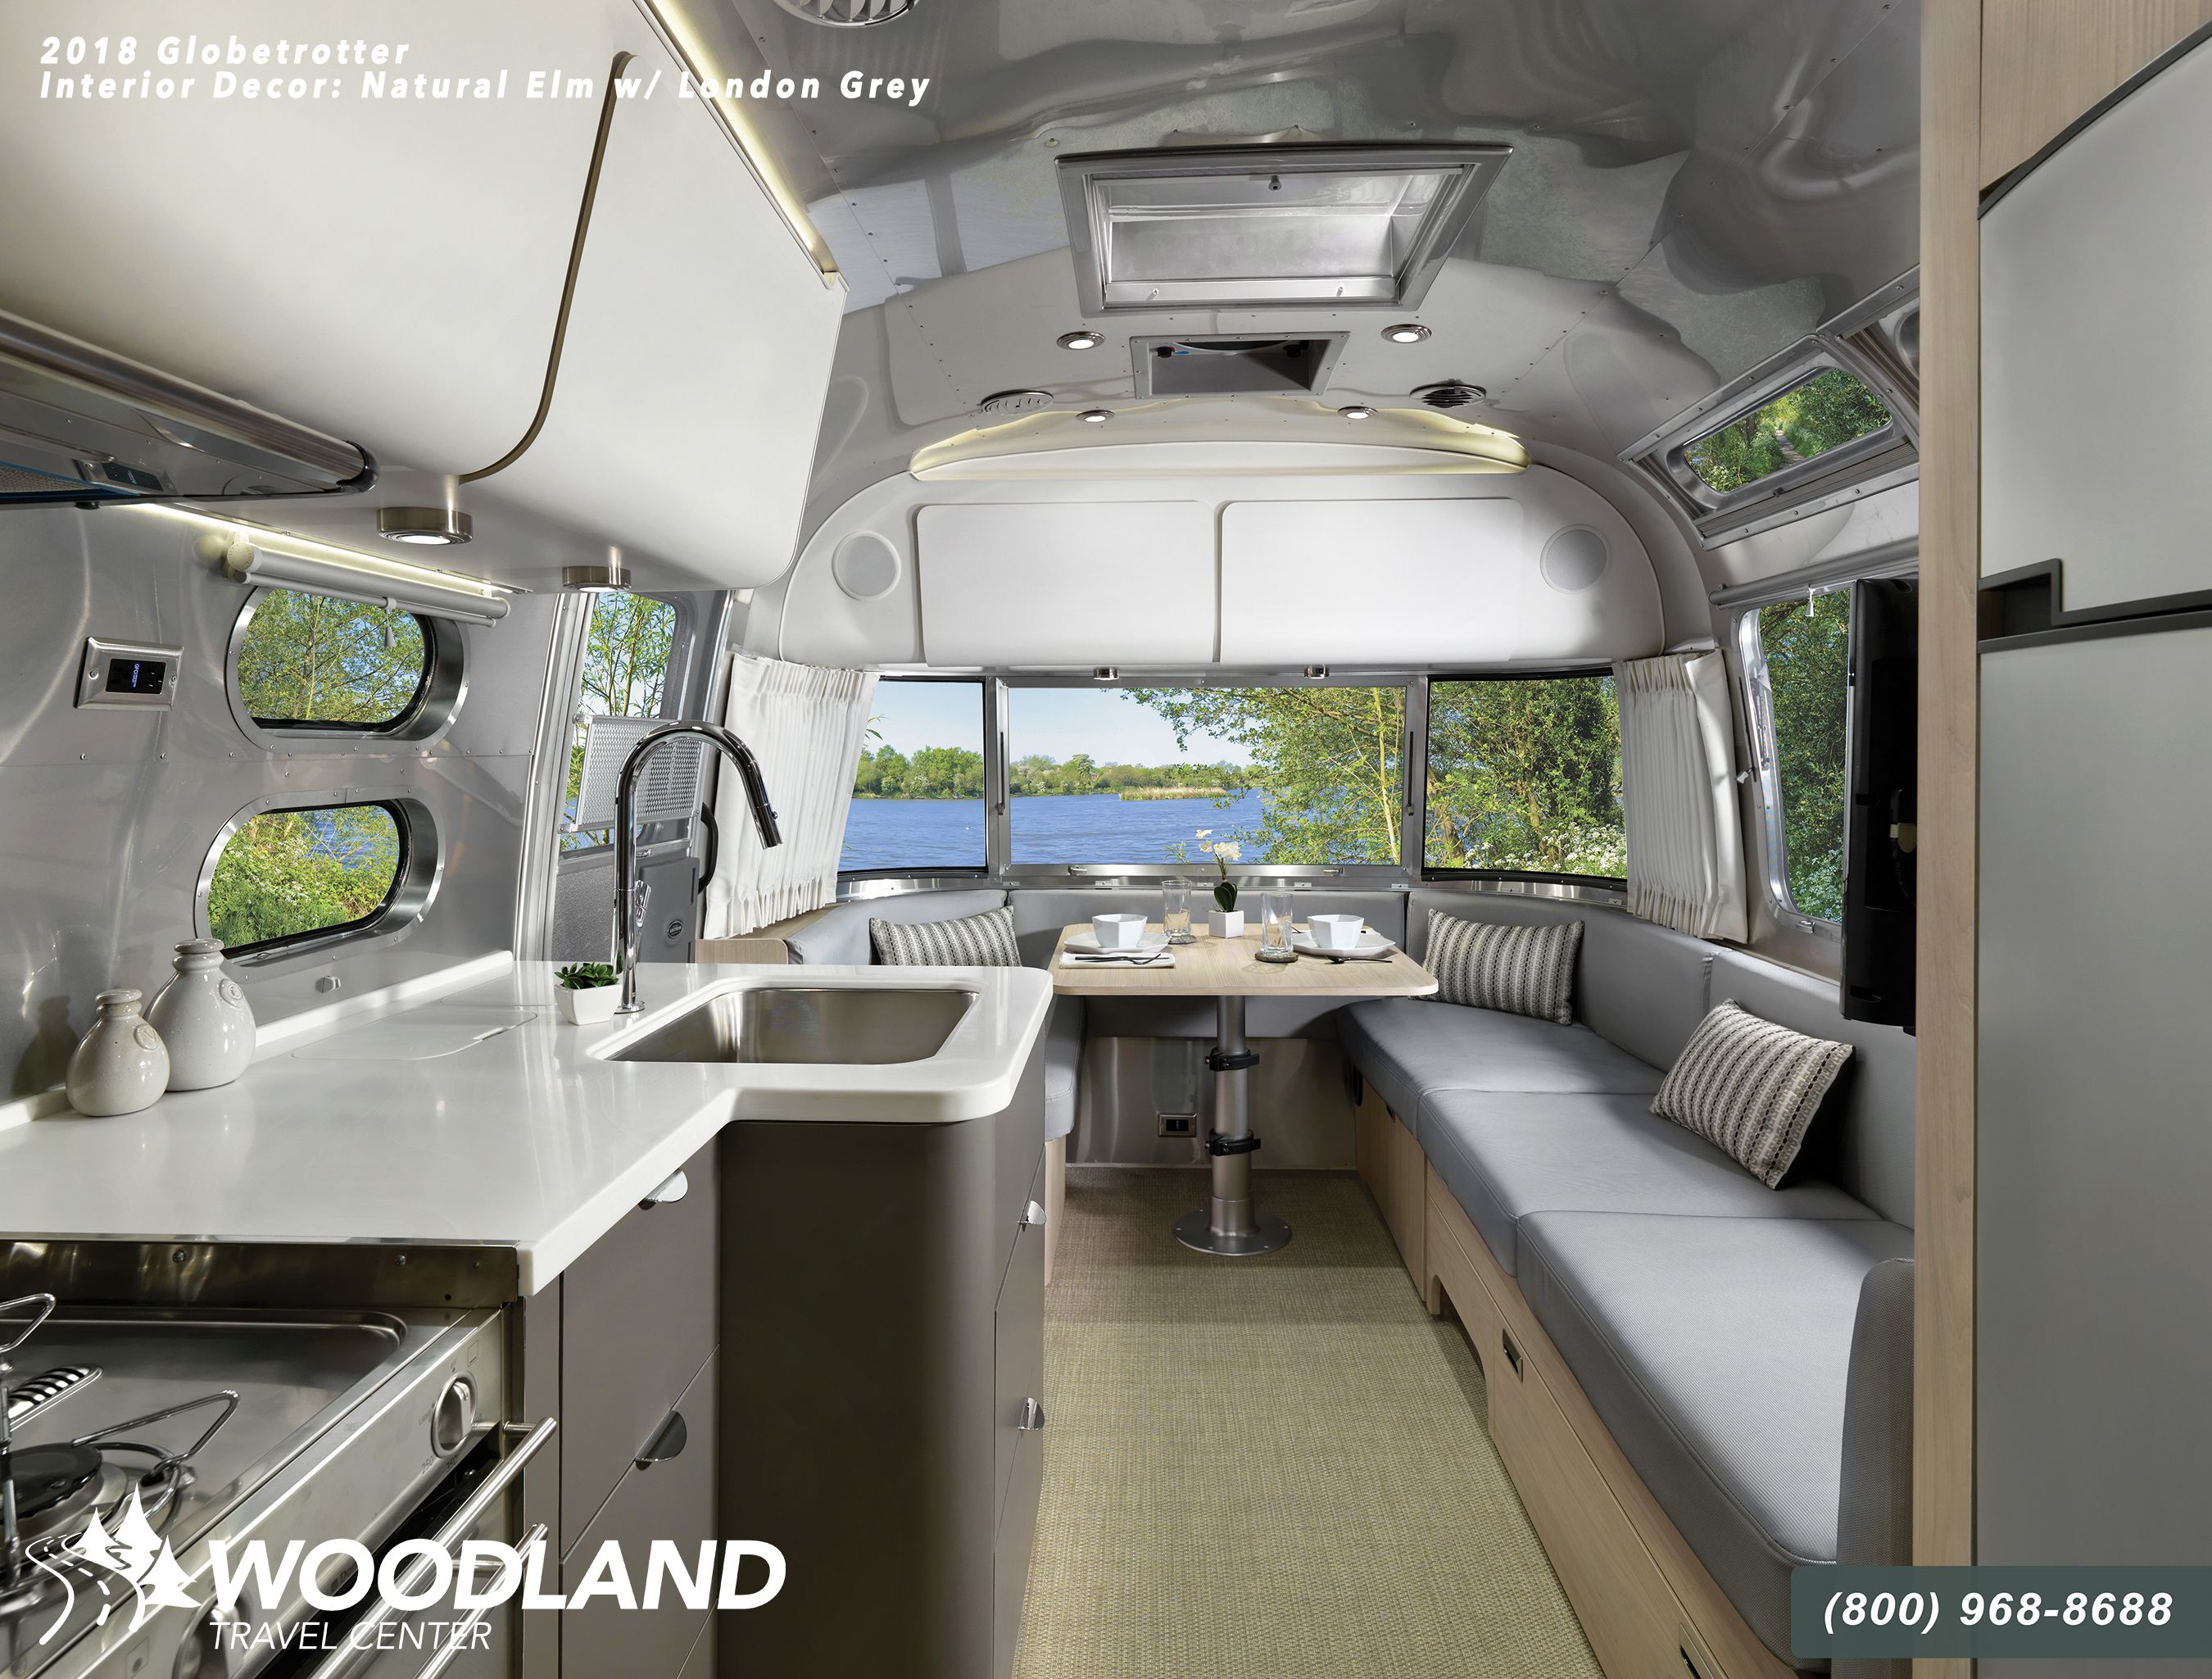 See Inside The Newest Airstream Travel Trailer Model The New 2018 Airstream Globetrotter Woodland Tra Airstream Interior Luxury Accommodation Luxury Camping